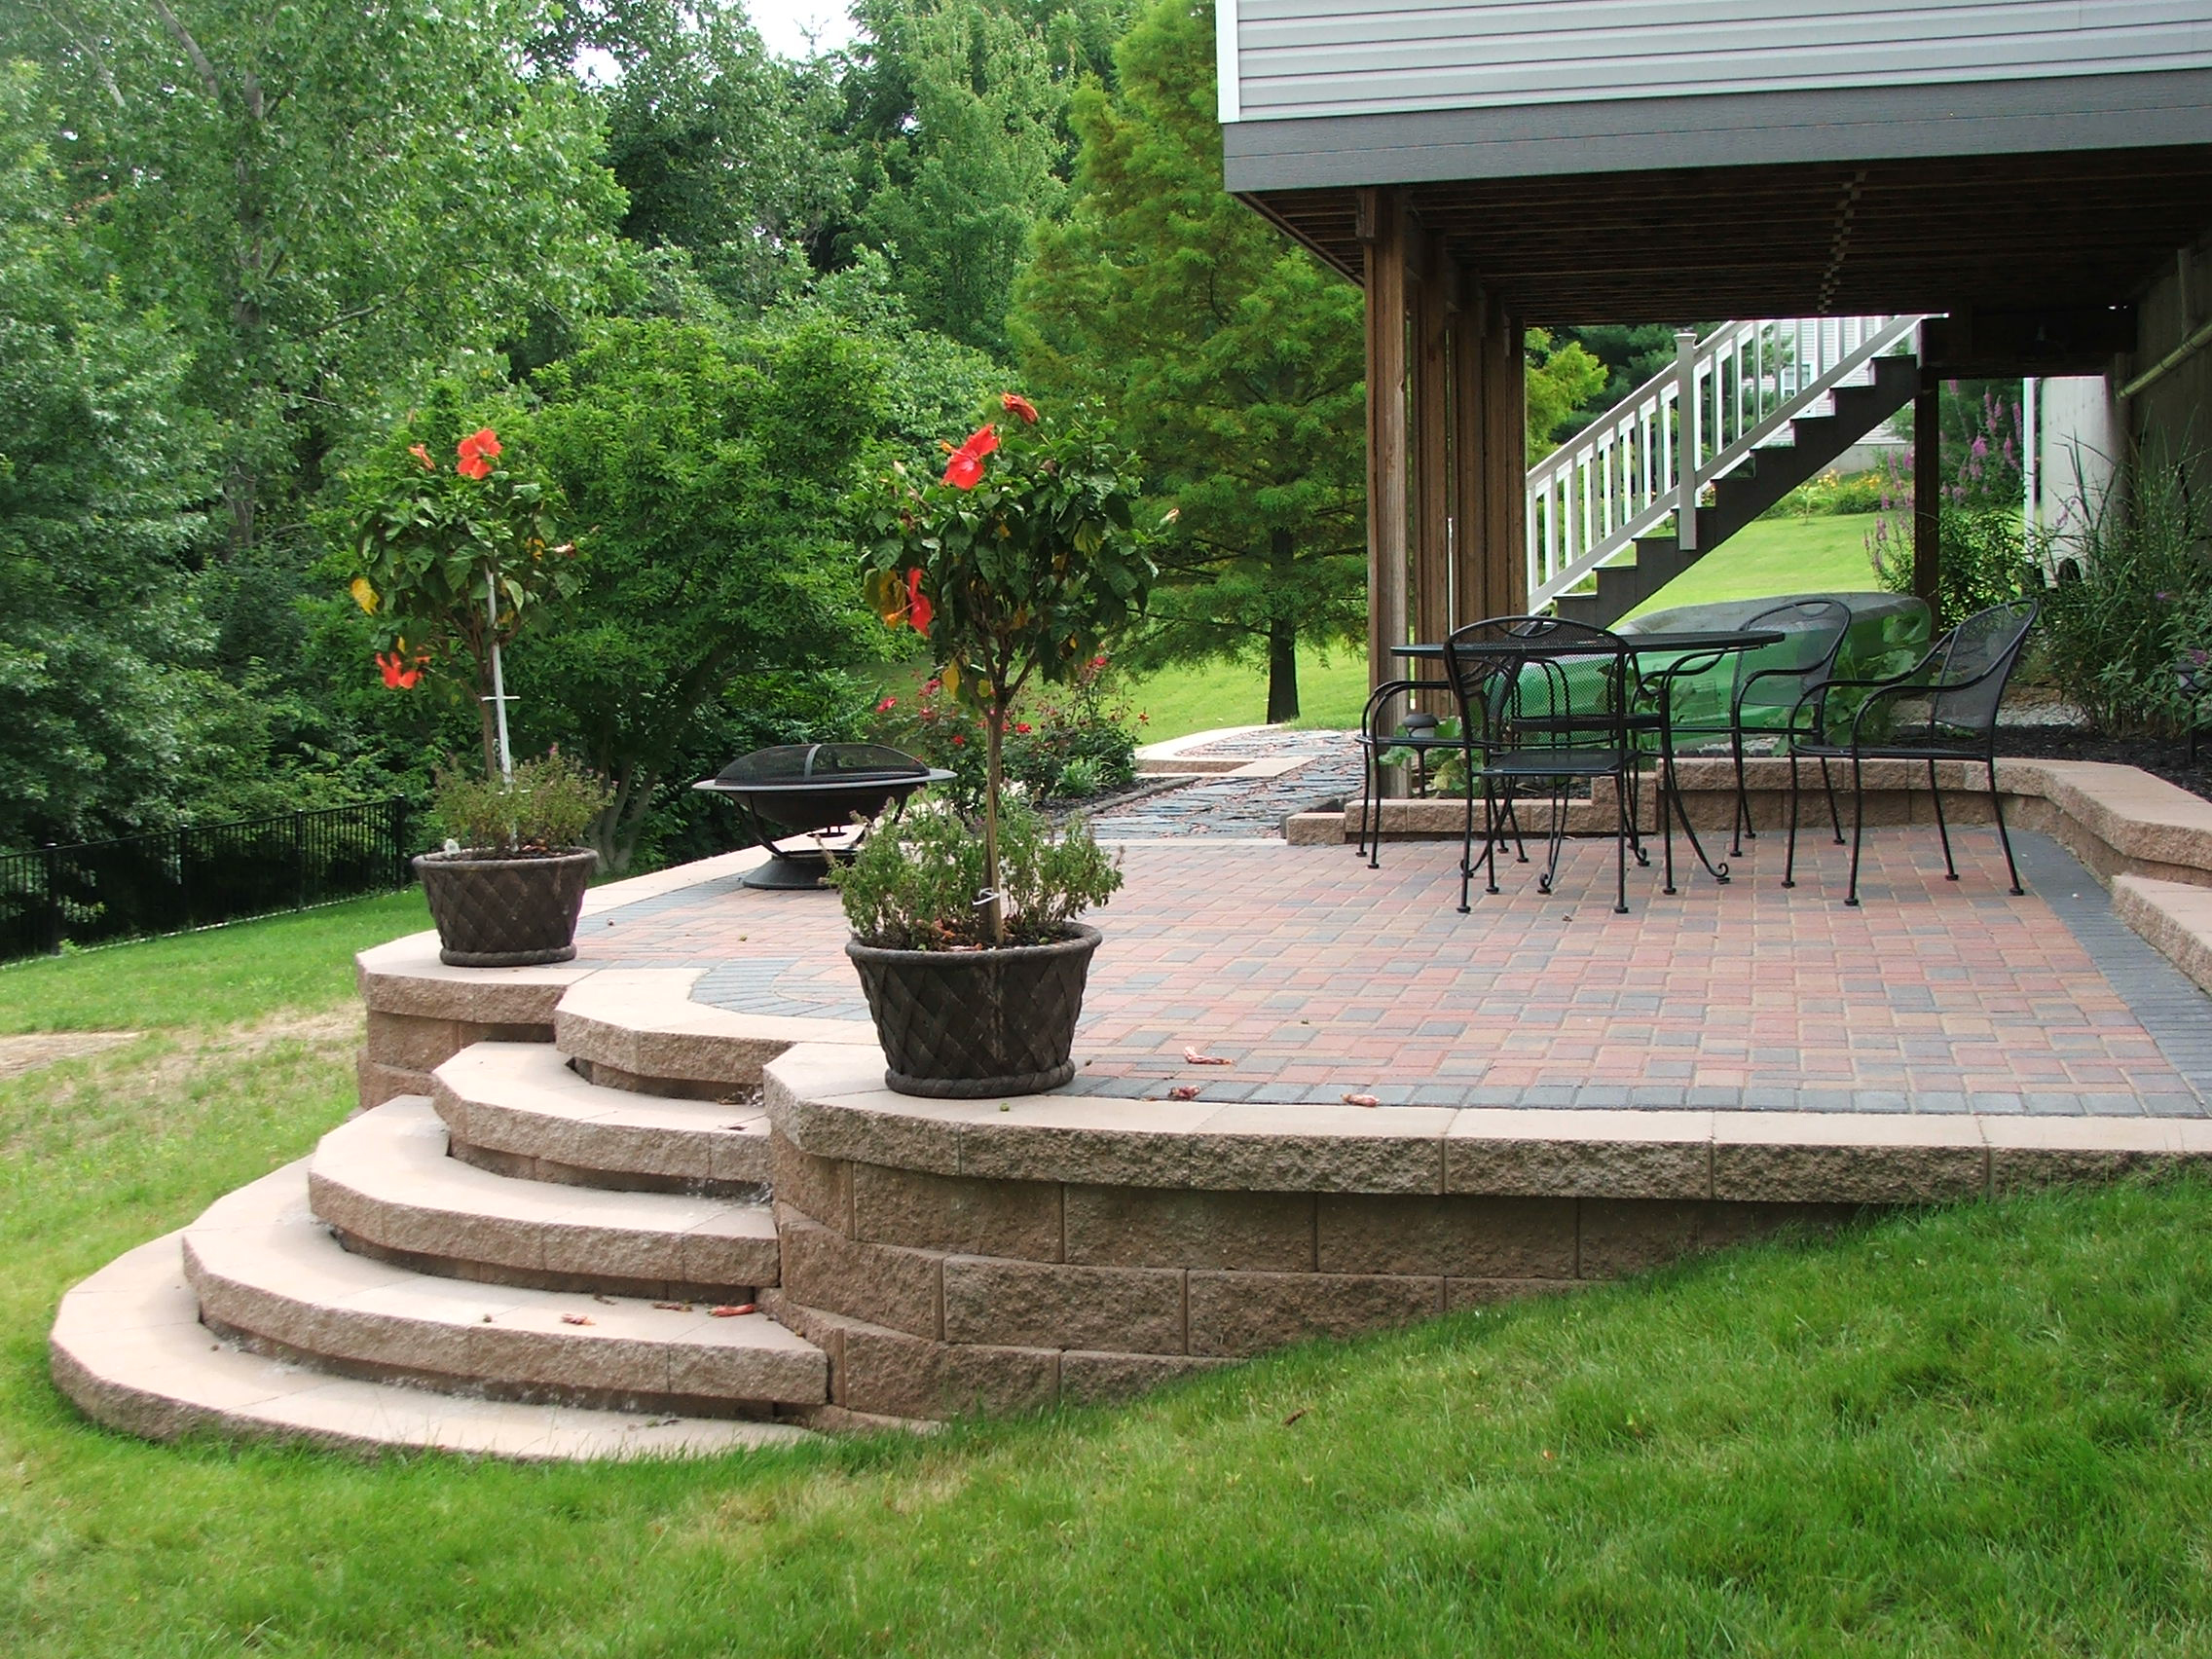 Merveilleux ... Curved Steps To Paver Patio. This Set Of Concrete Retaining Wall ...